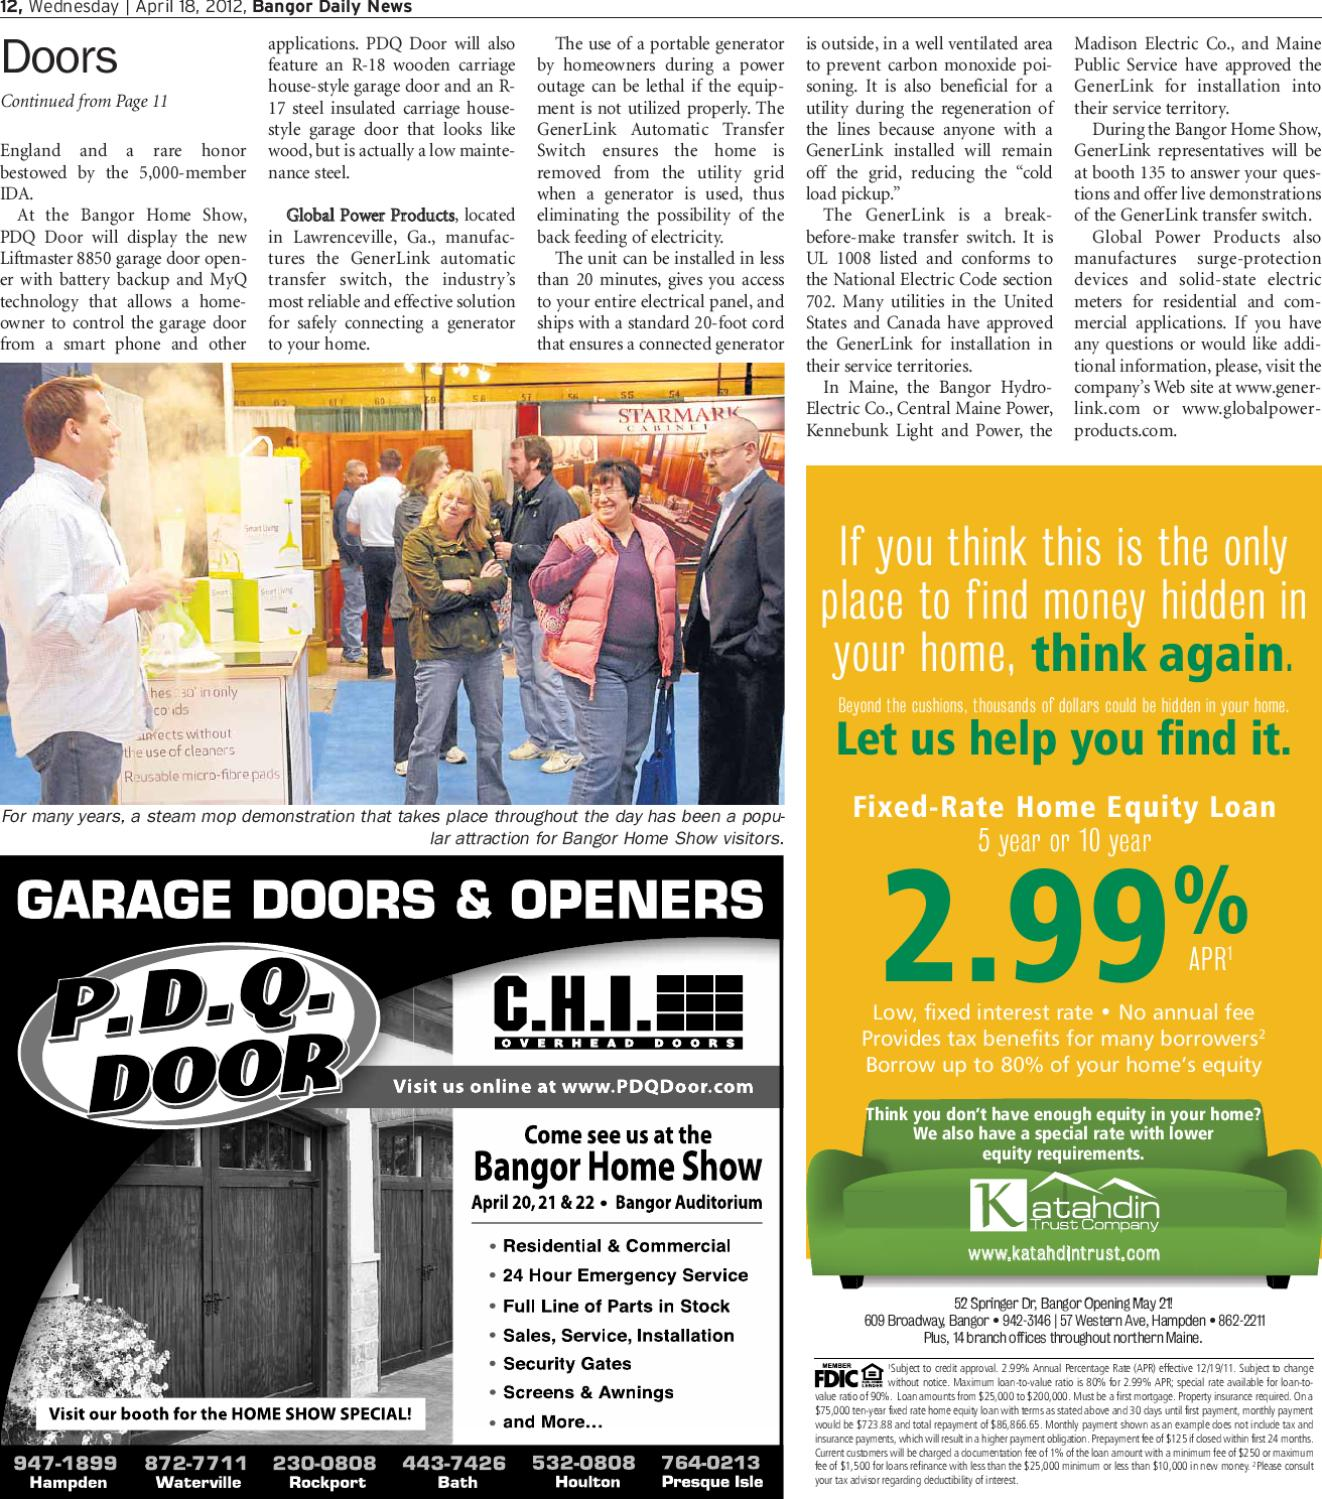 sc 1 st  Issuu & The 42nd Annual Bangor Home Show by Bangor Daily News - issuu